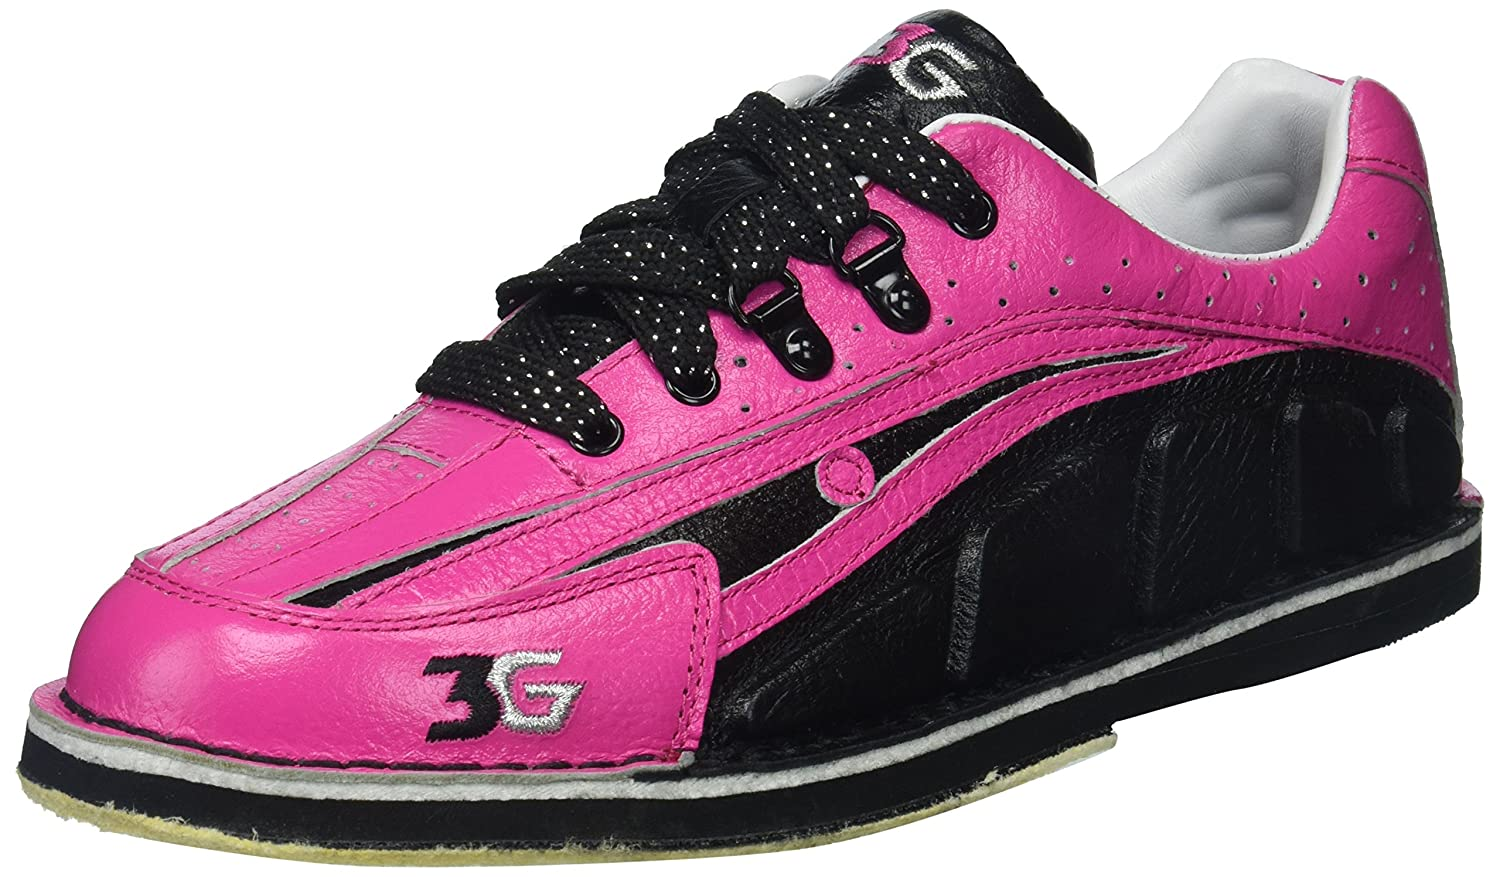 900 Global Tour Ultra Bowling Shoes B012A9OGSU Ladies 7.5|Pink/Black